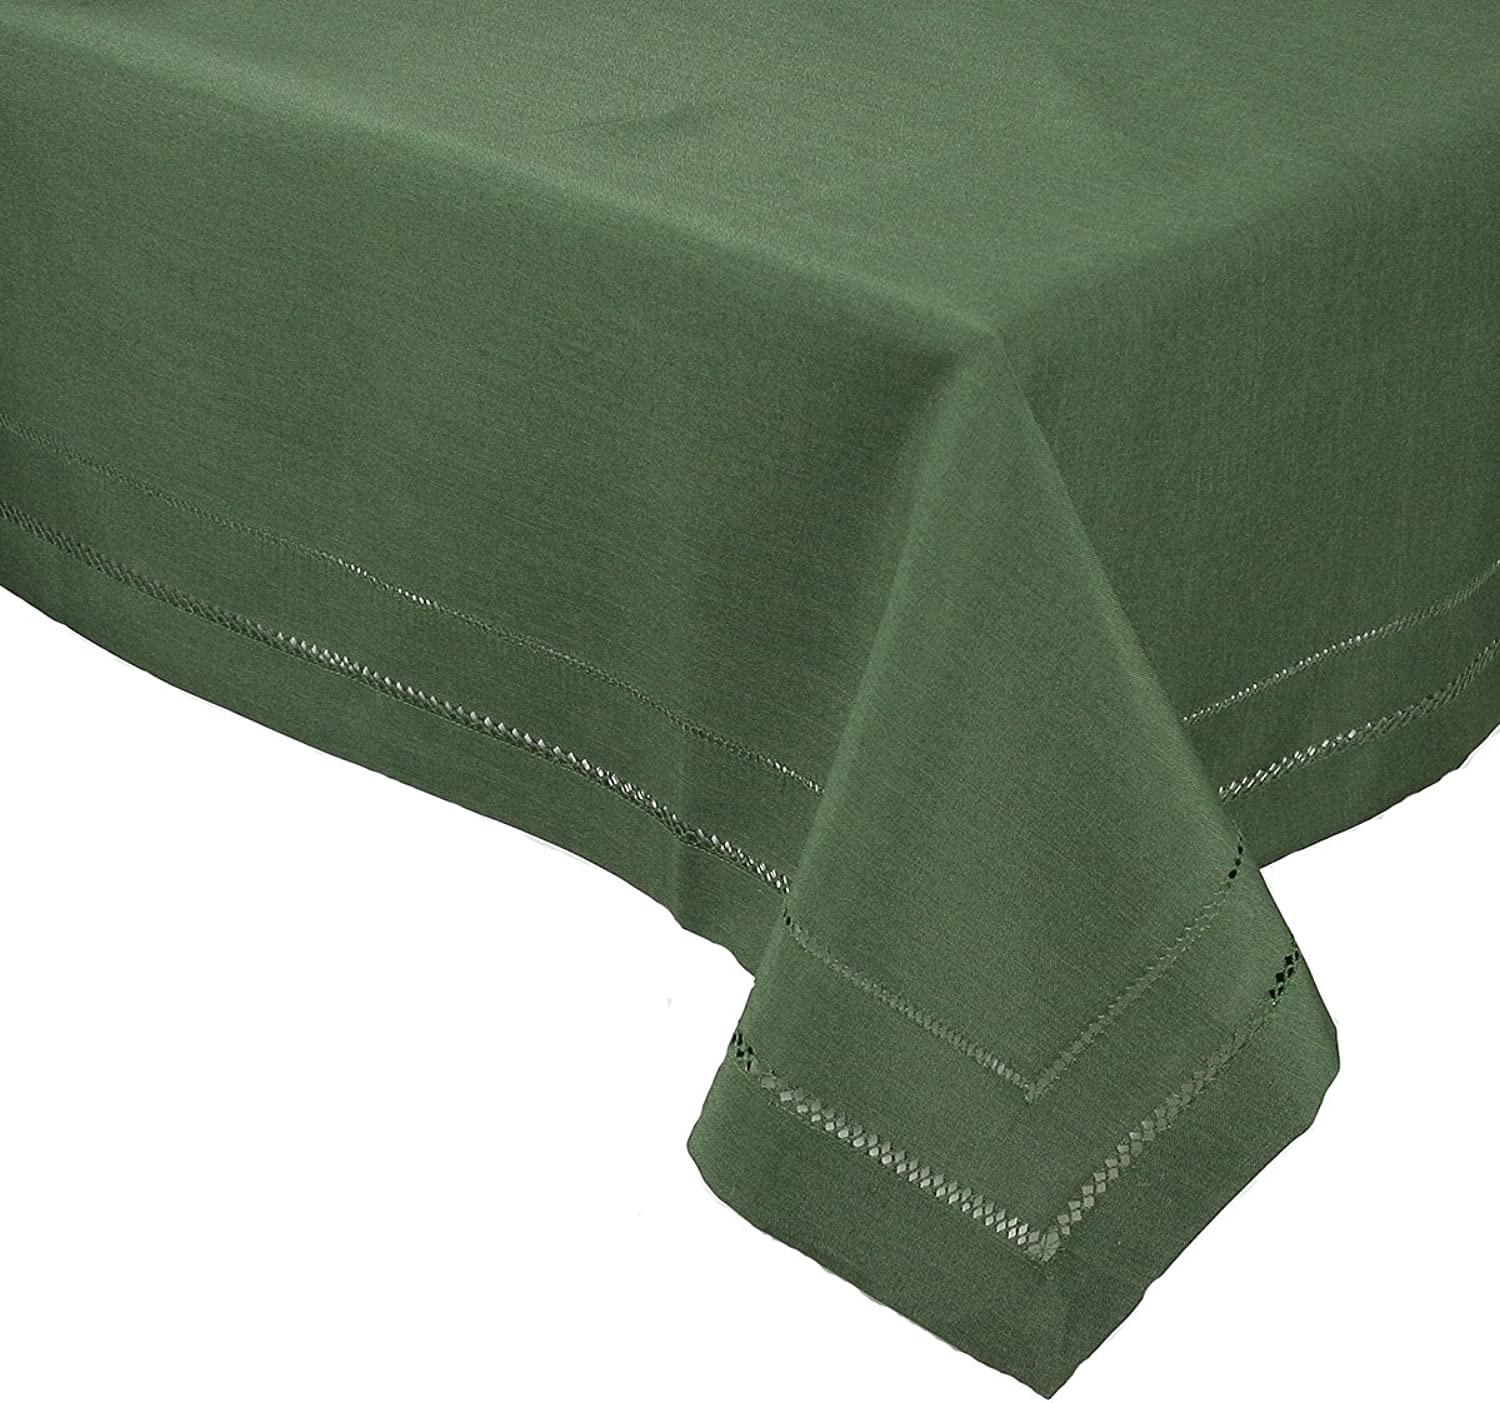 Xia Home Fashions Double Hemstitch Easy Care Tablecloth, 60 by 120-Inch, Pine